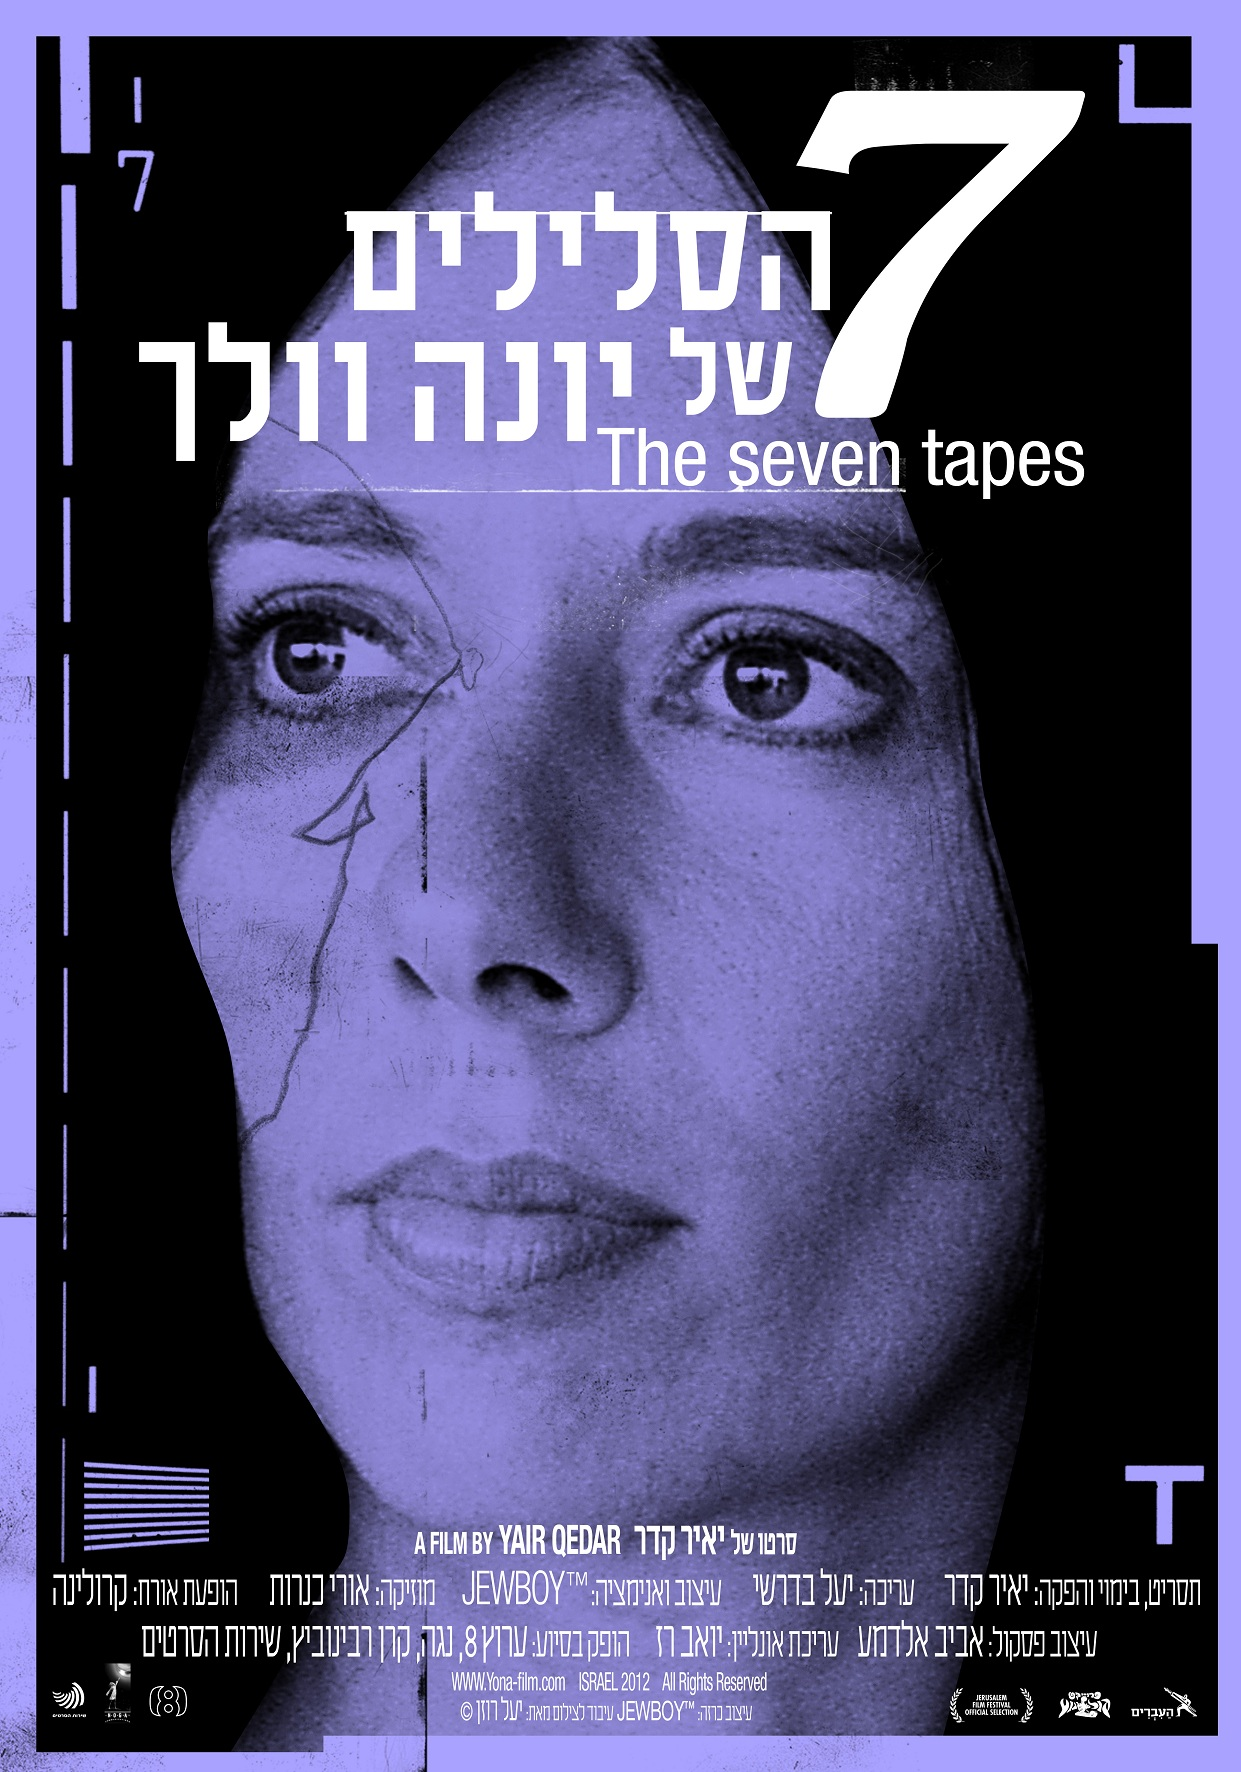 the story of the radical Israeli Poet